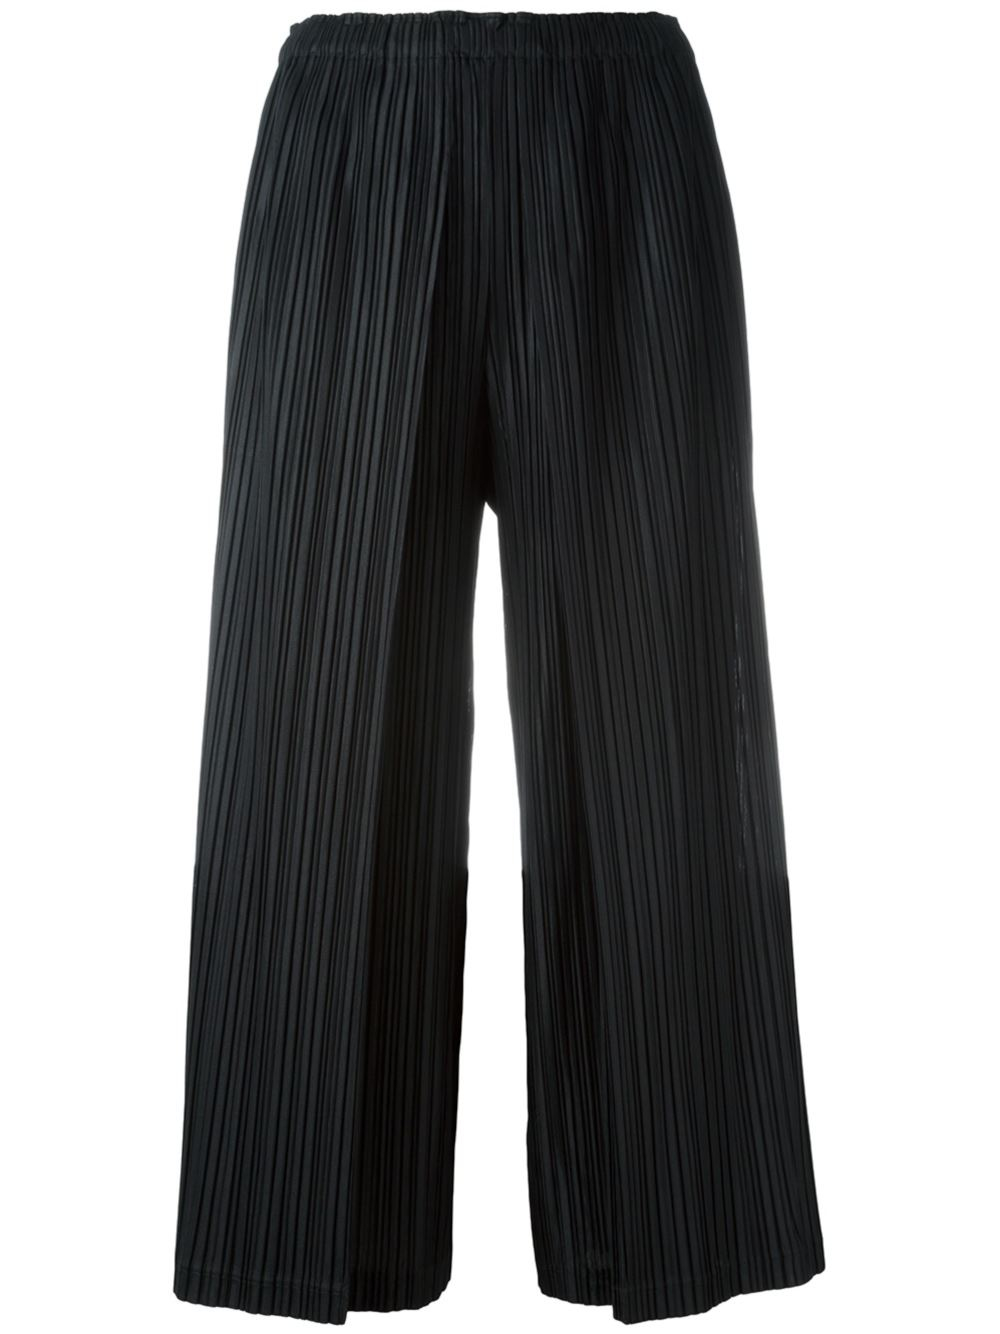 pleats please issey miyake pleated culottes in black lyst. Black Bedroom Furniture Sets. Home Design Ideas